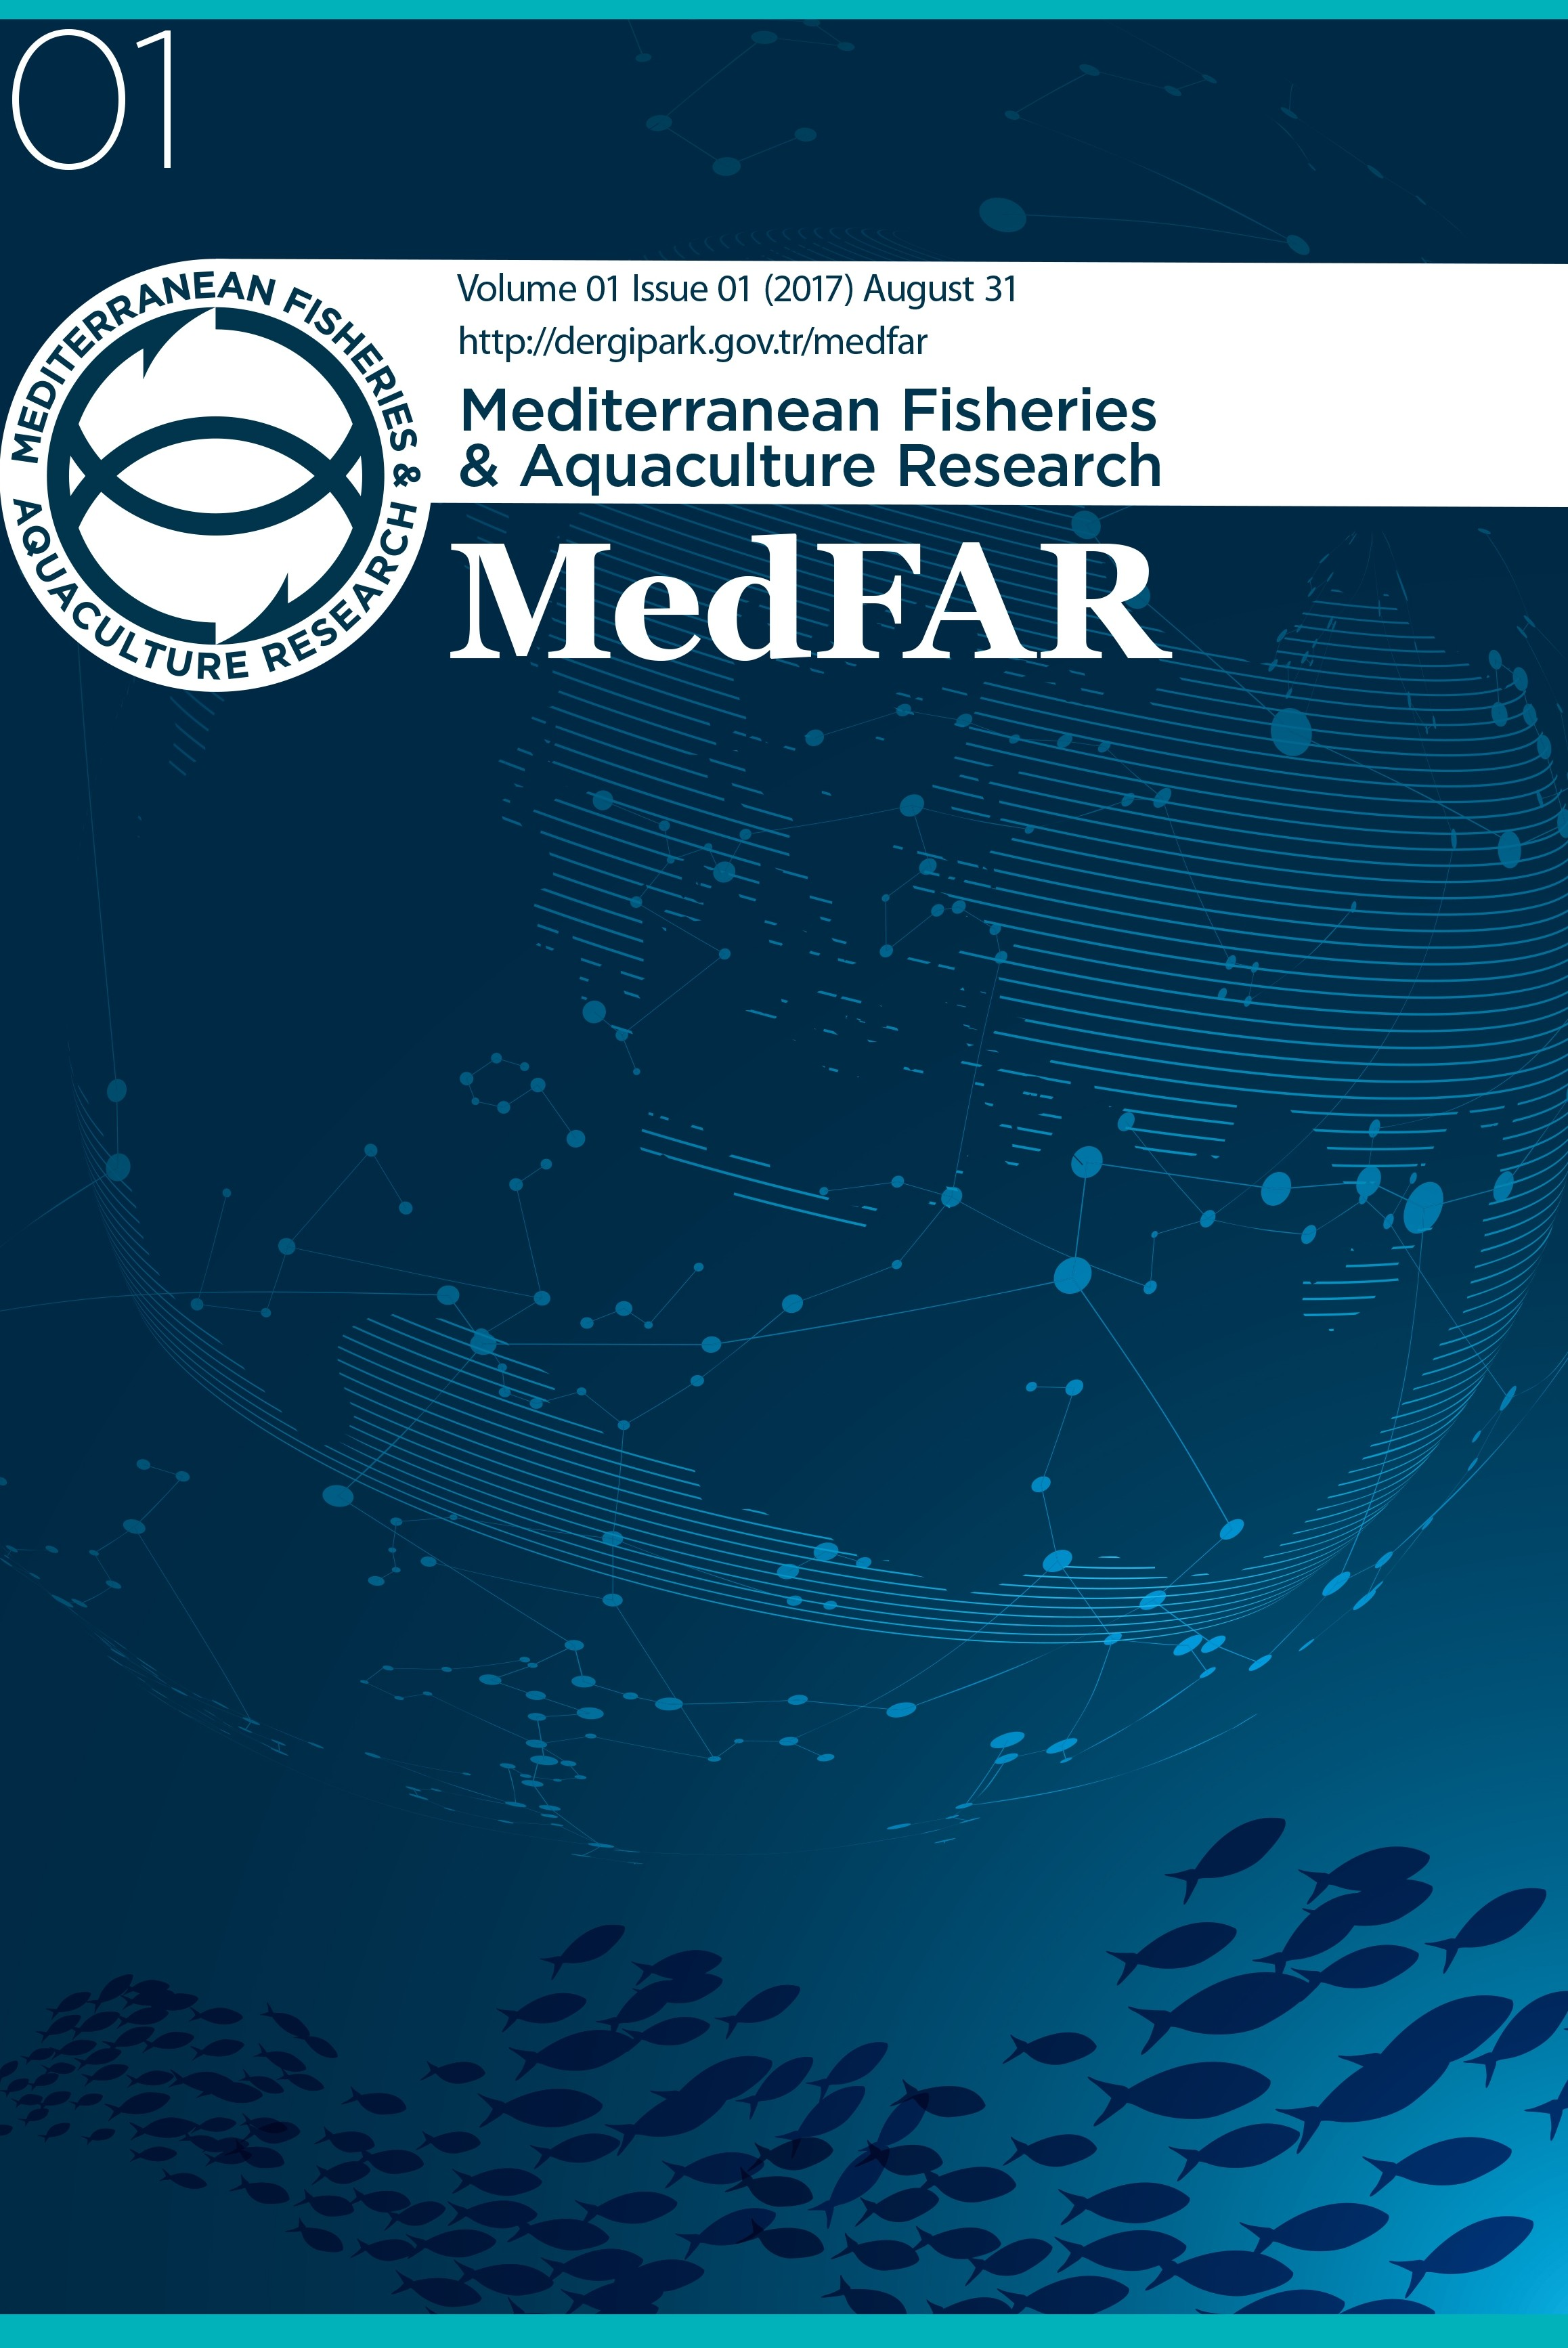 Mediterranean Fisheries and Aquaculture Research